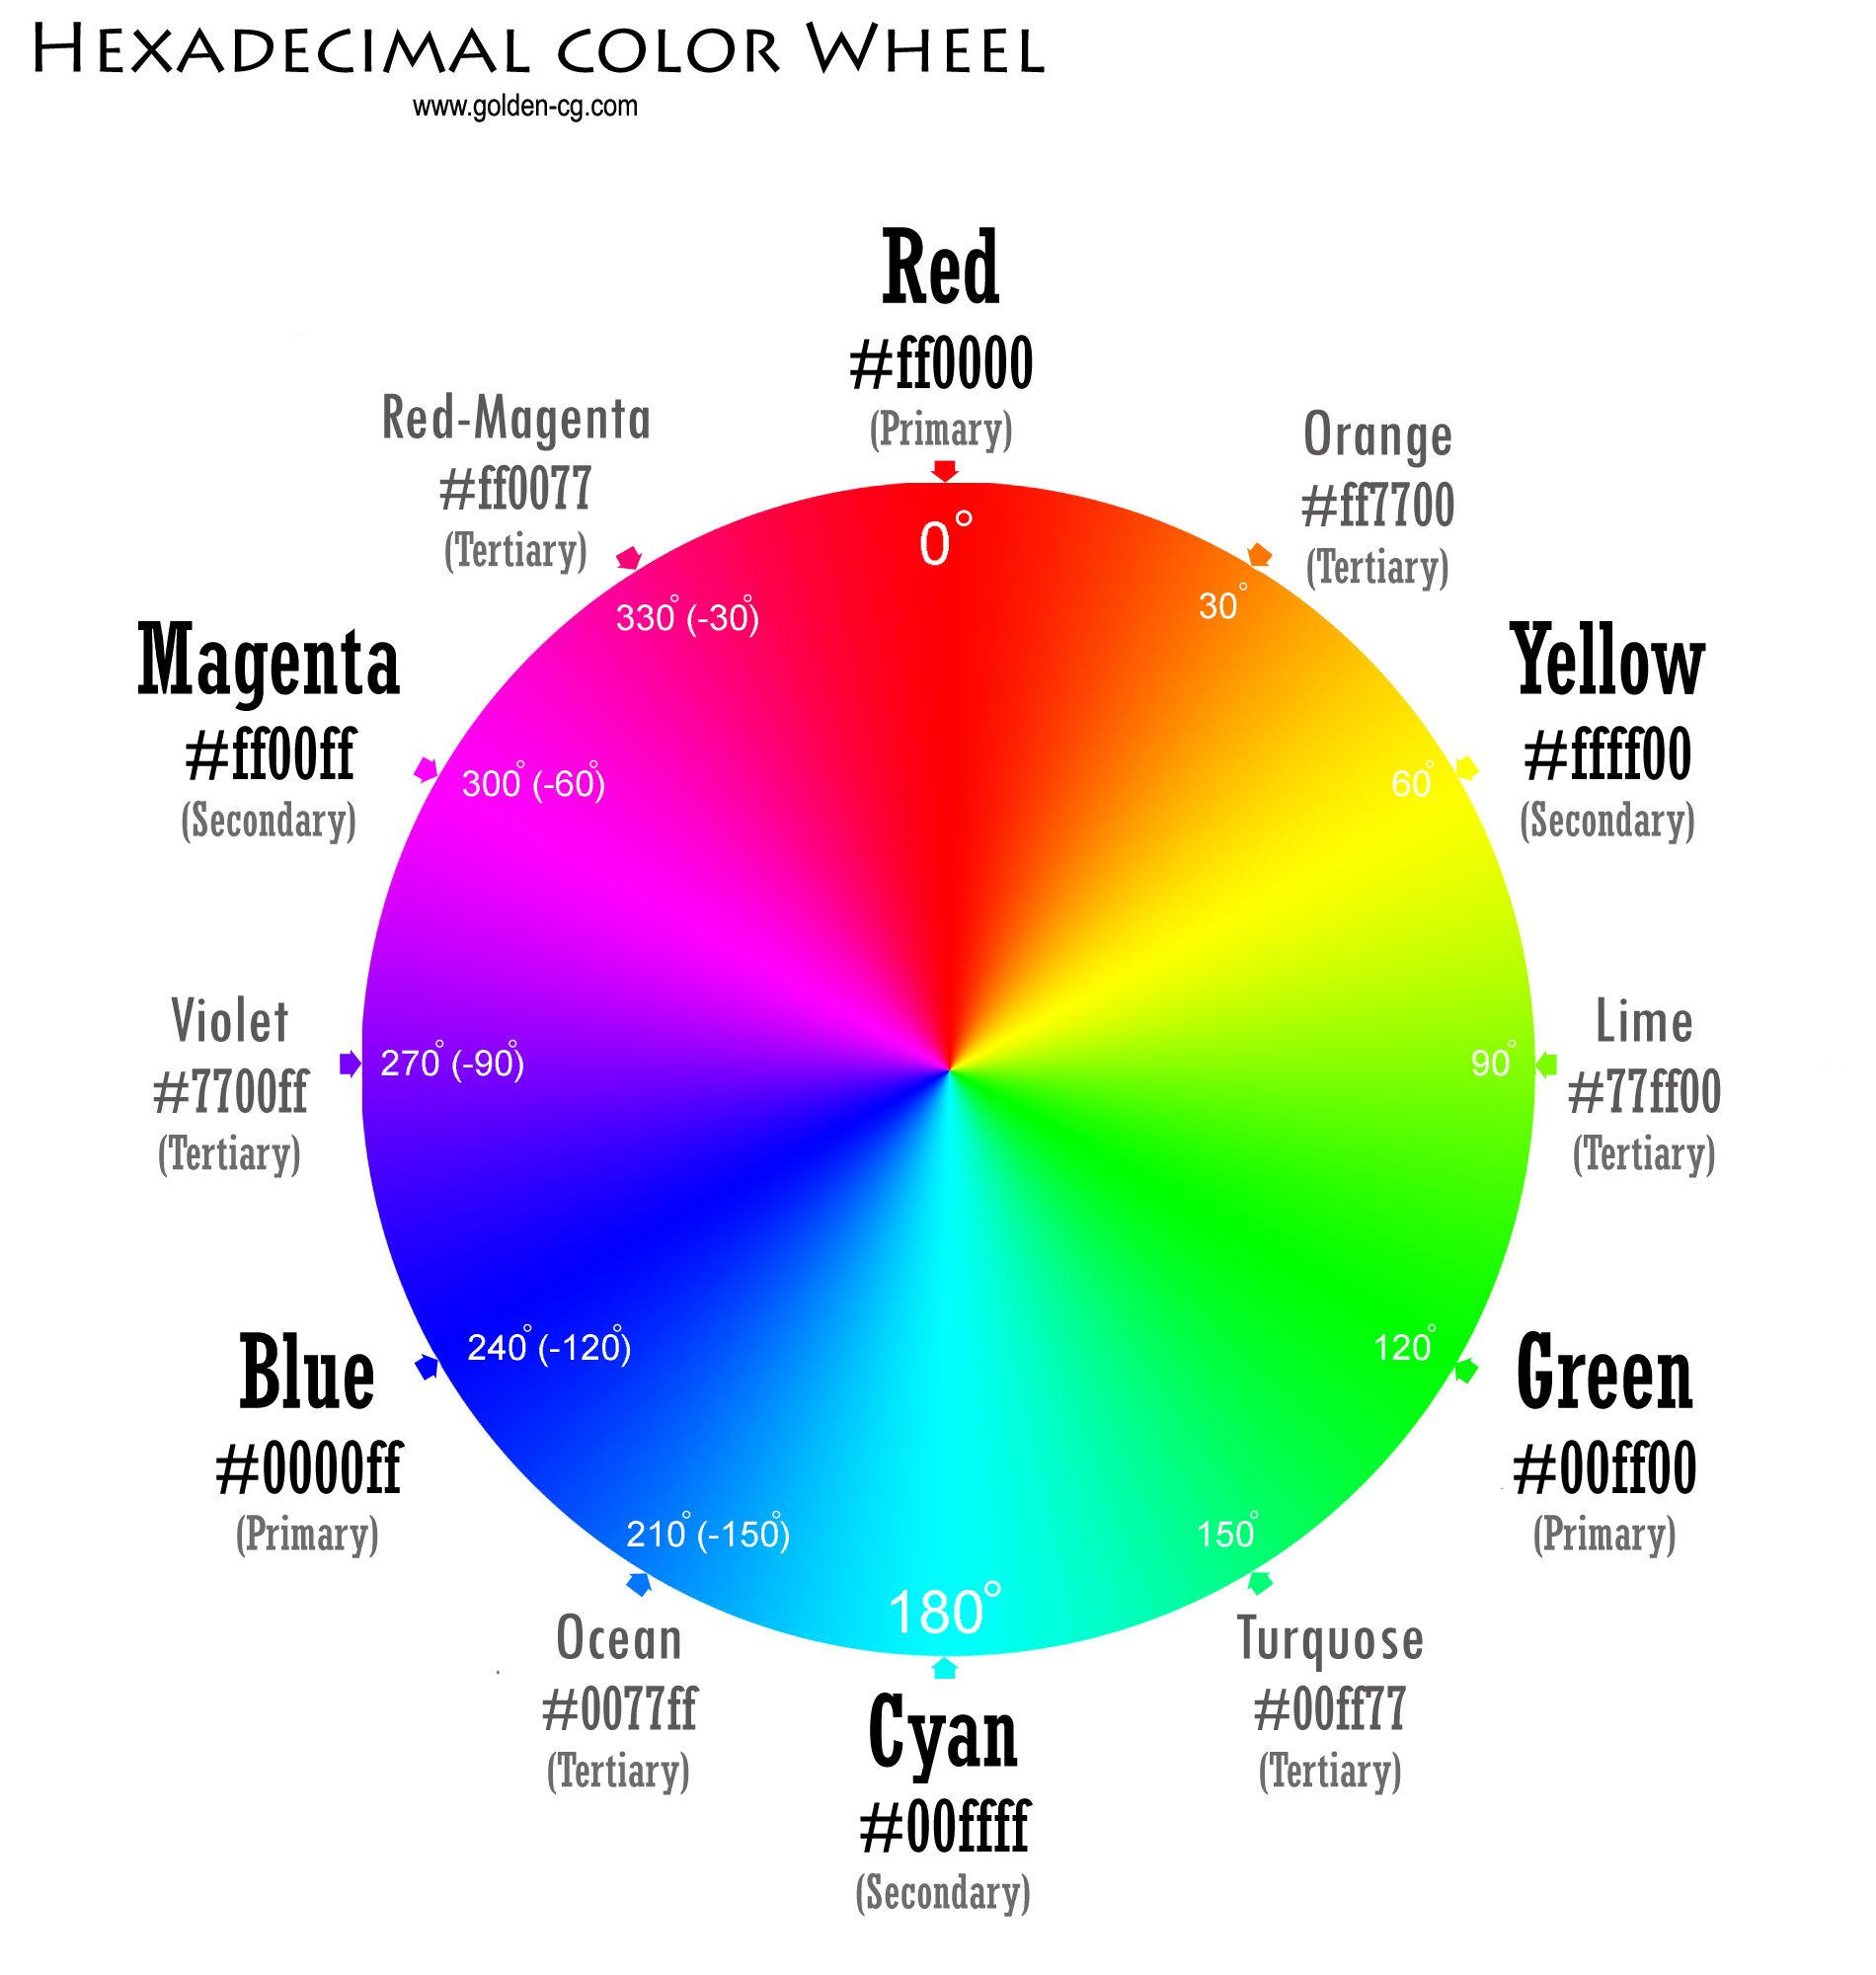 Hexadecimal Color Wheel